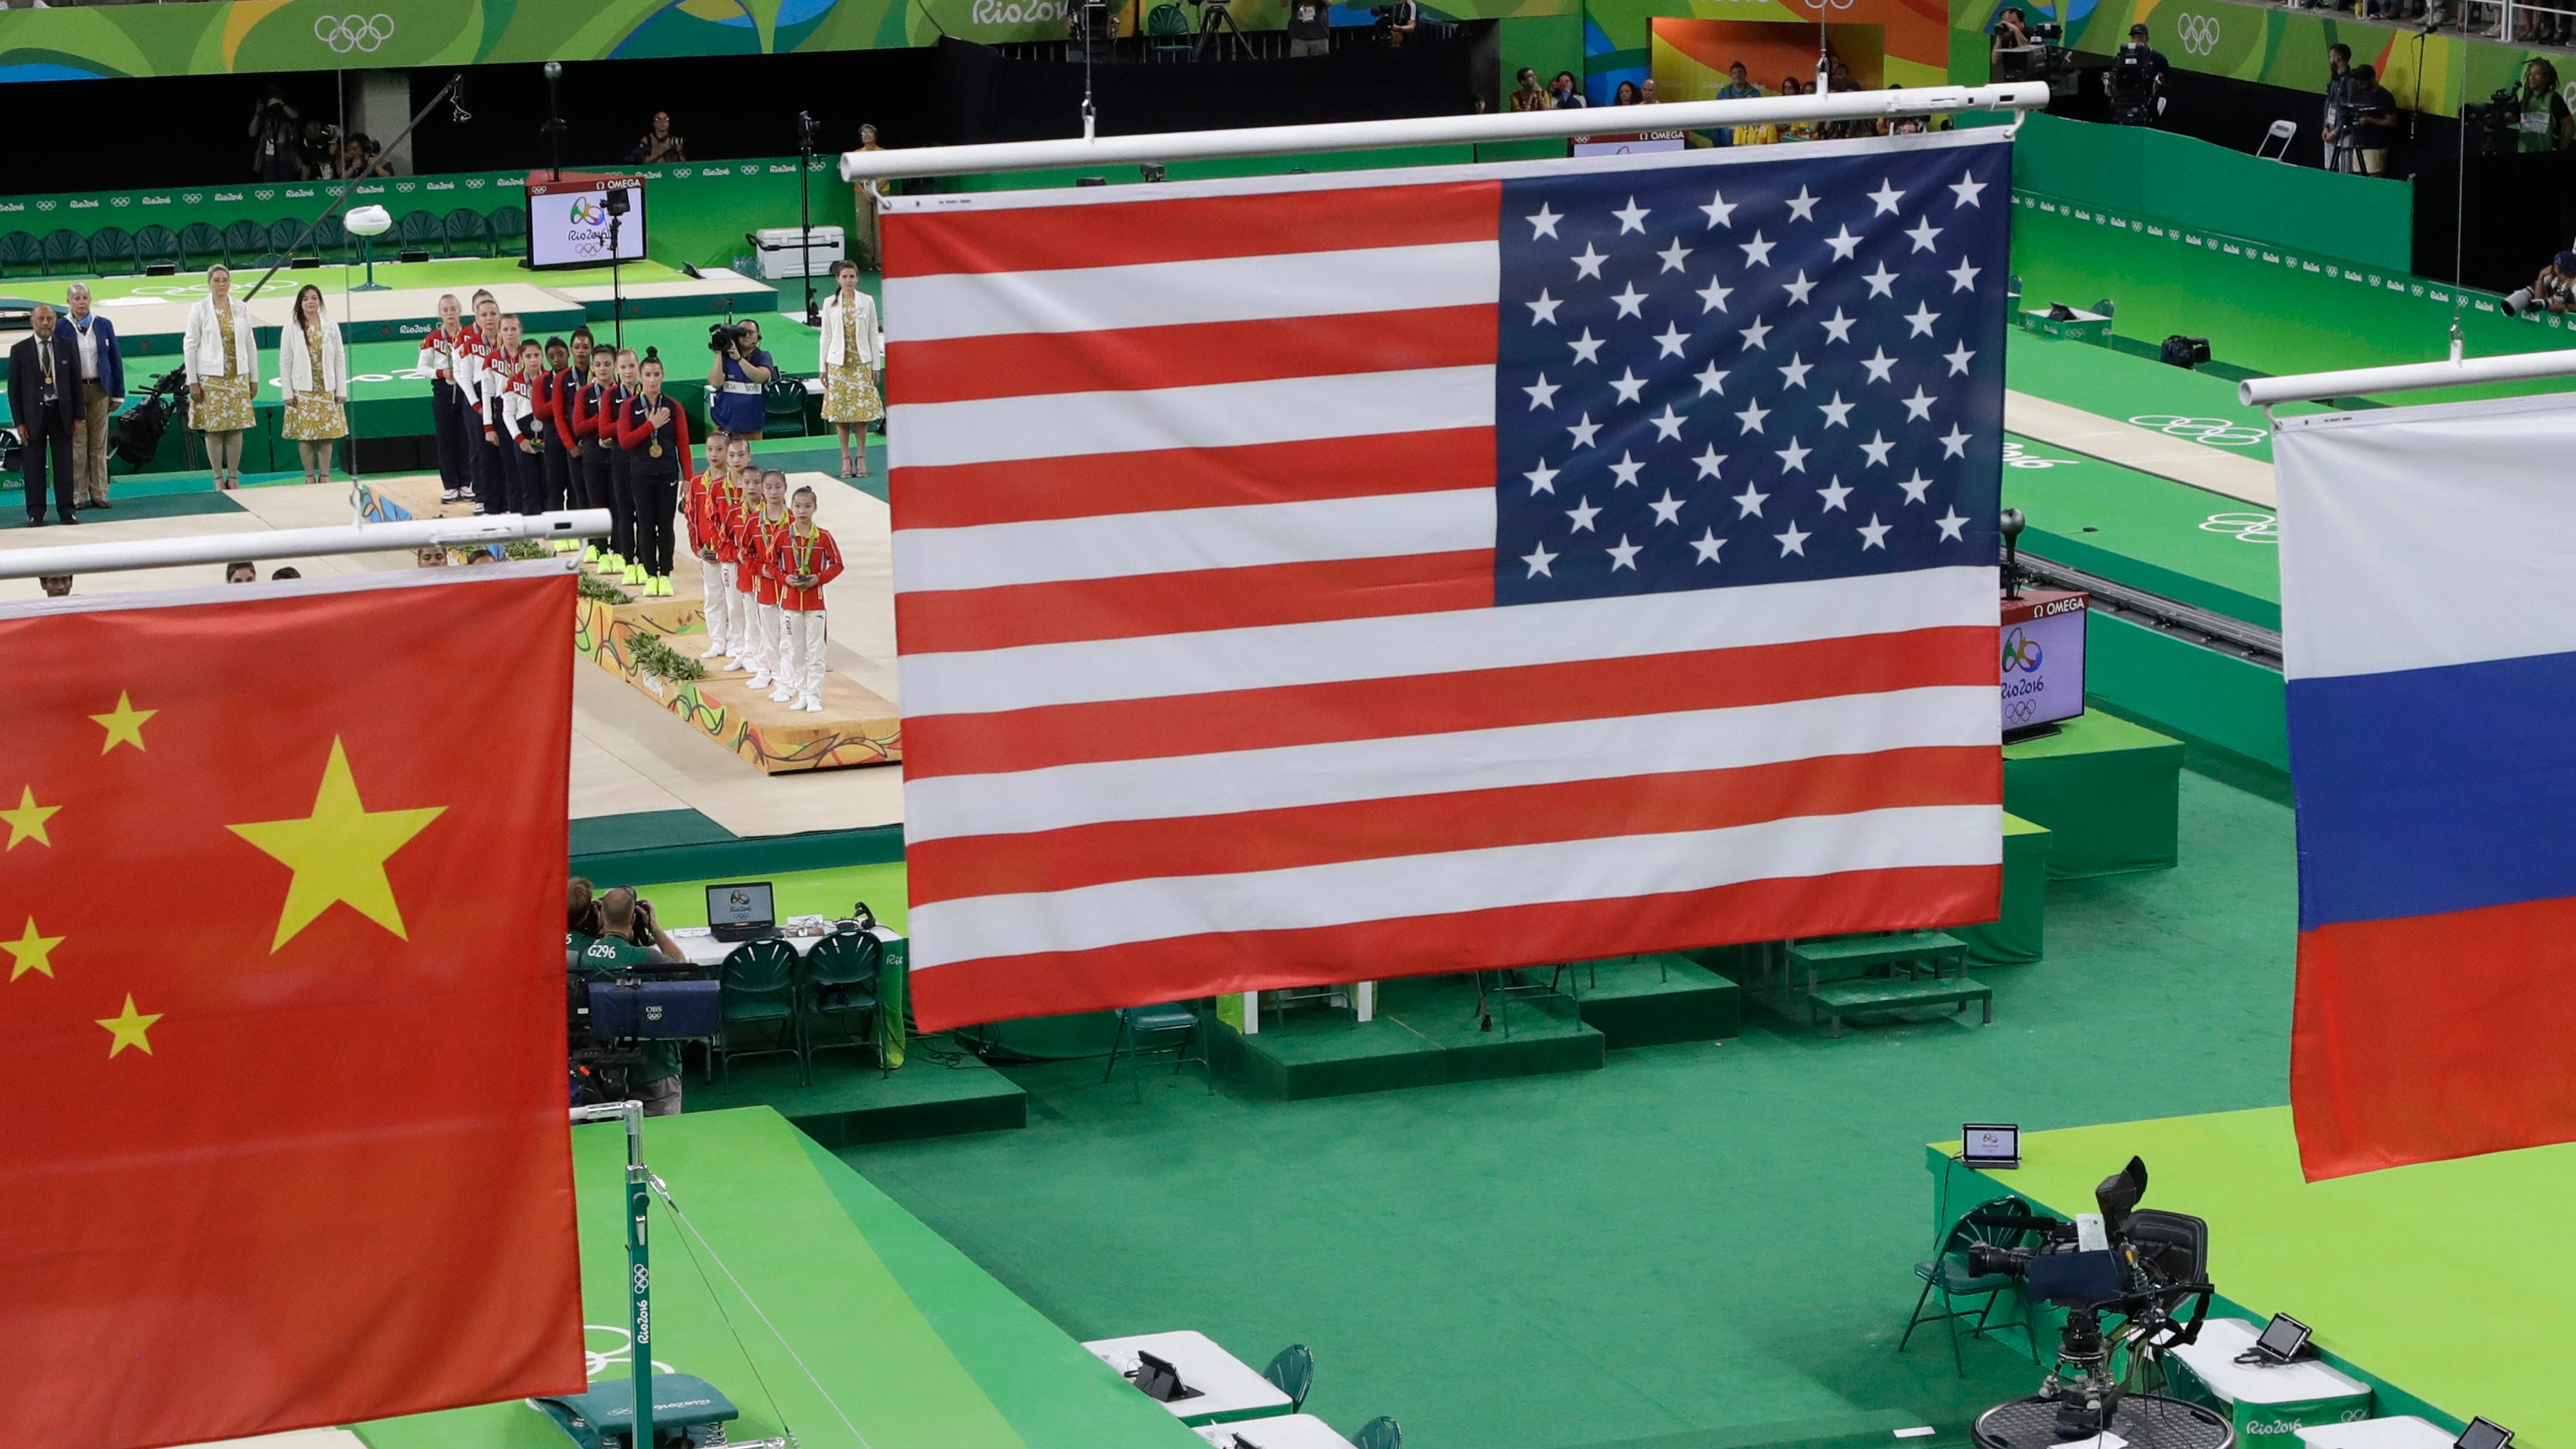 The flags of China, United States and  Russia hang above the gymnasts during the medal ceremony for the women's team event at the 2016 Summer Olympics in Rio de Janeiro.